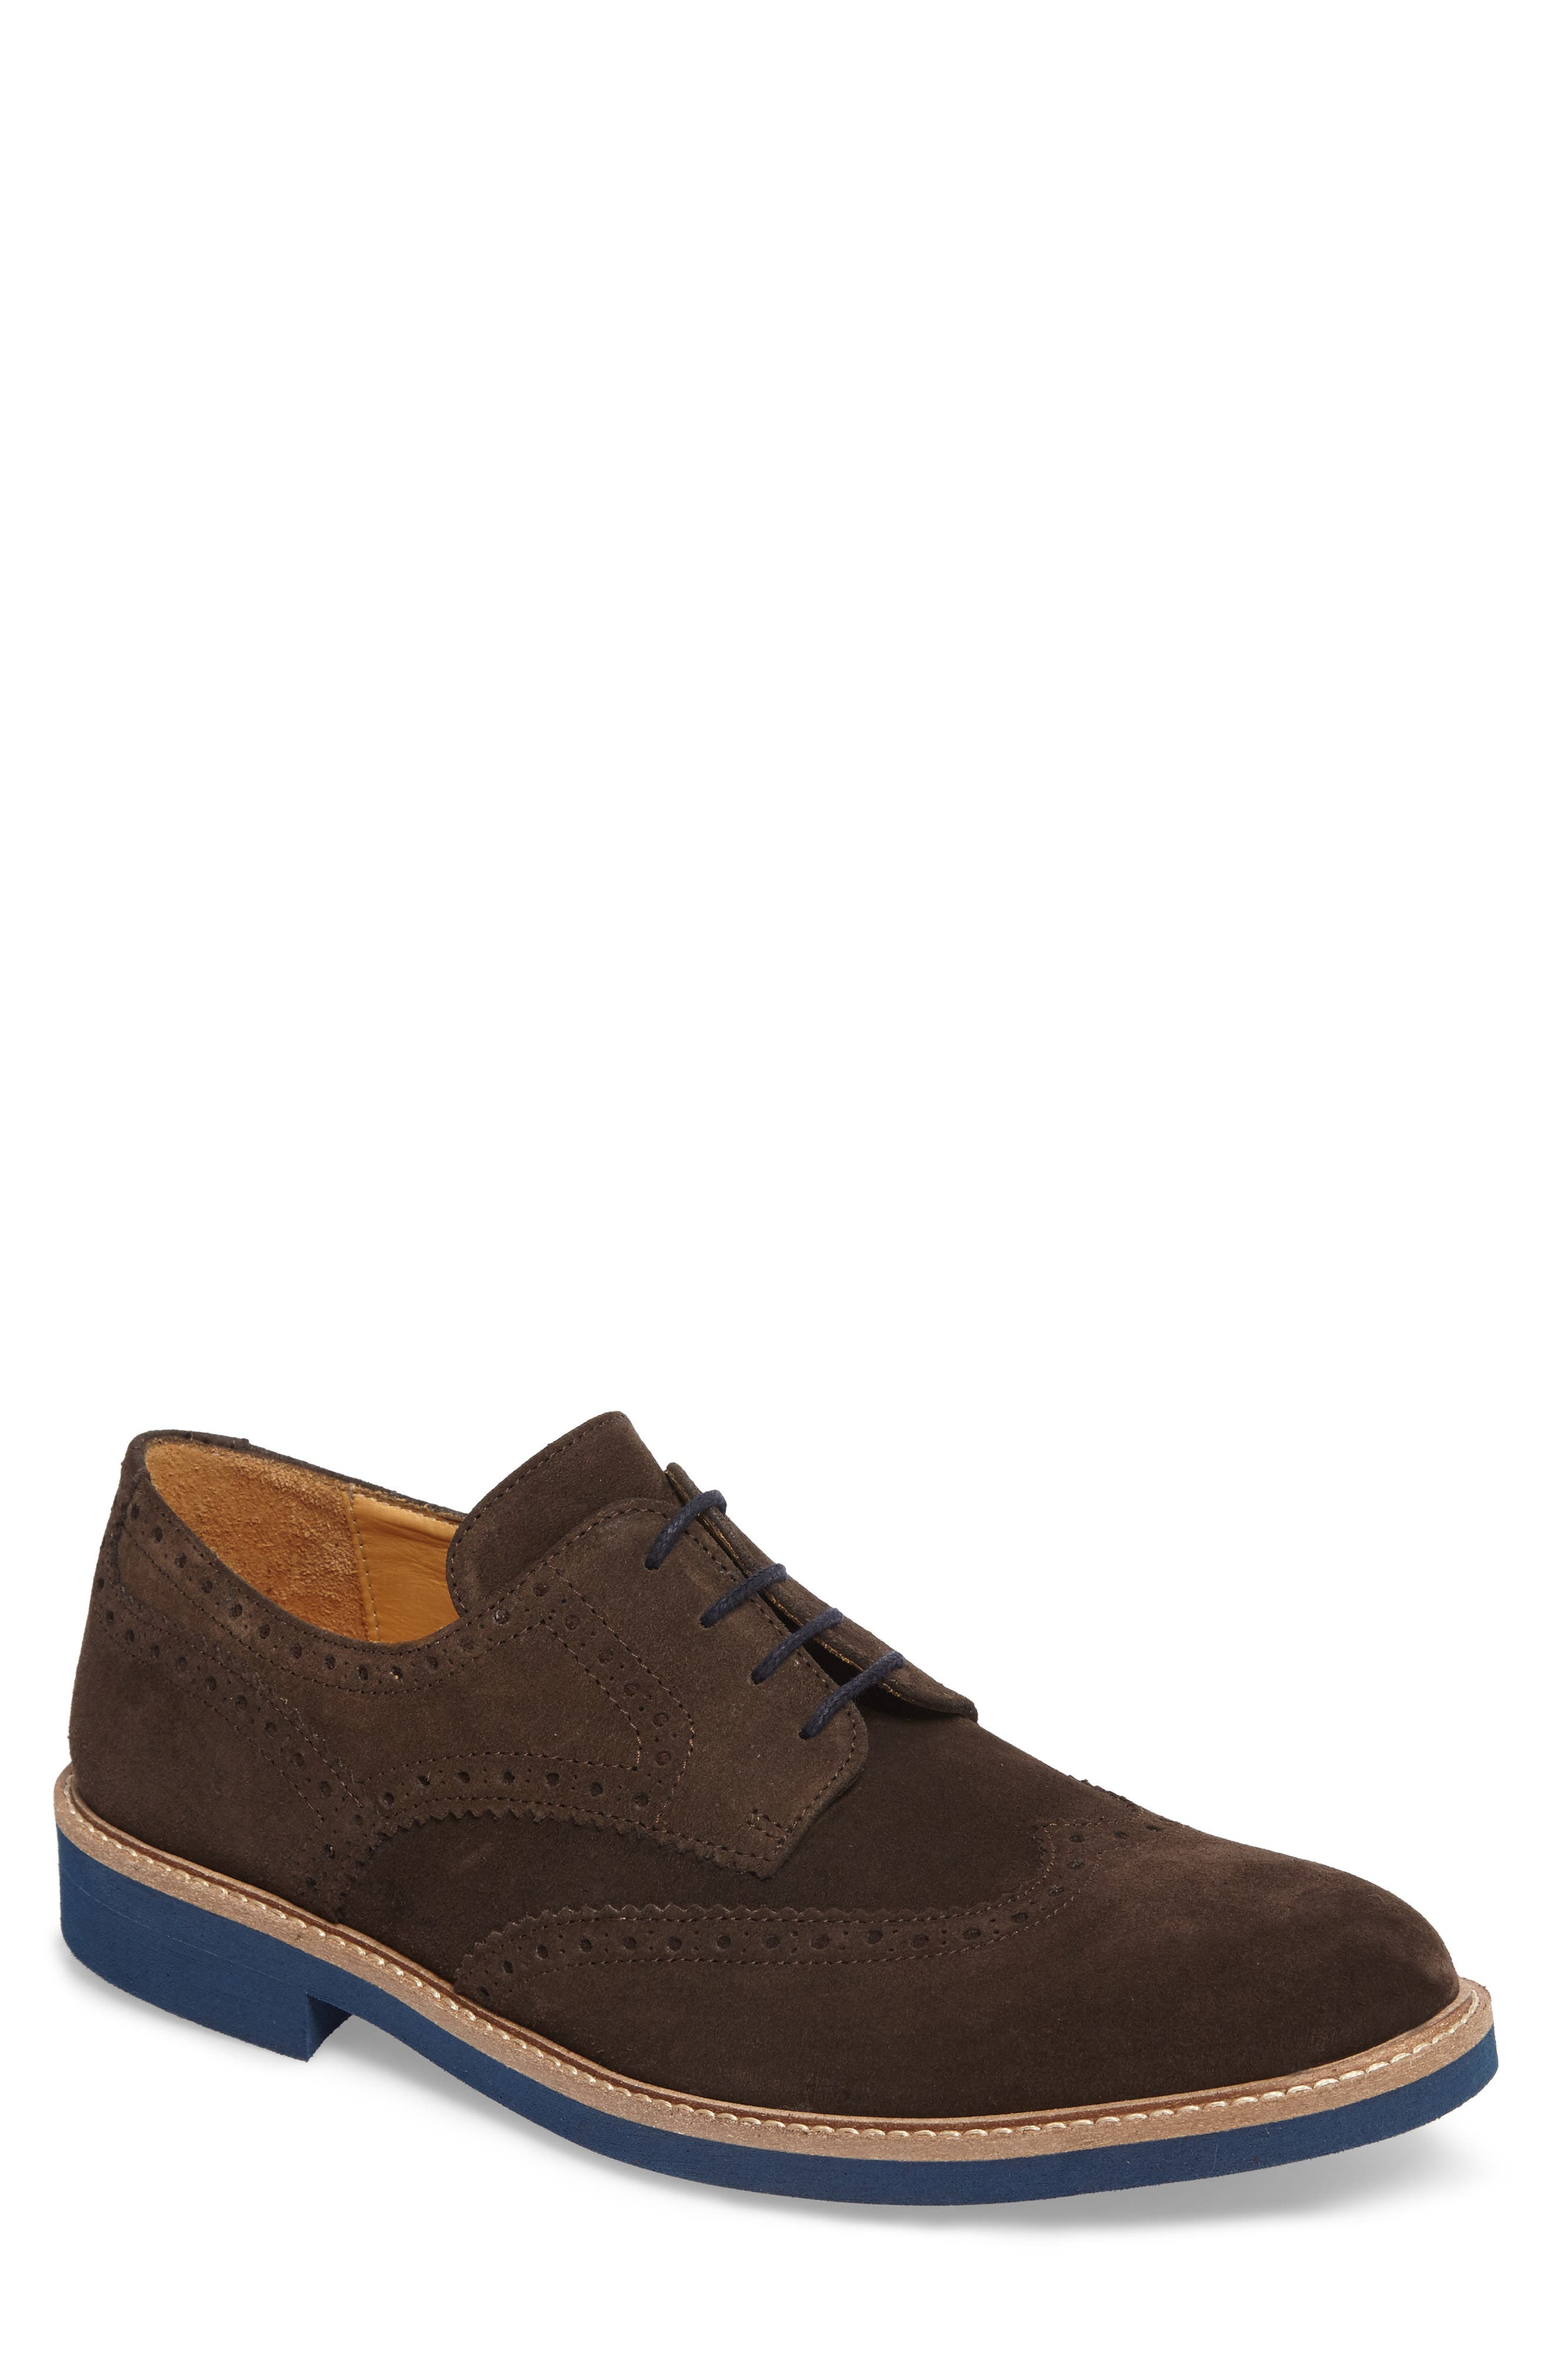 Southports Wingtip,                         Main,                         color, Brown Suede